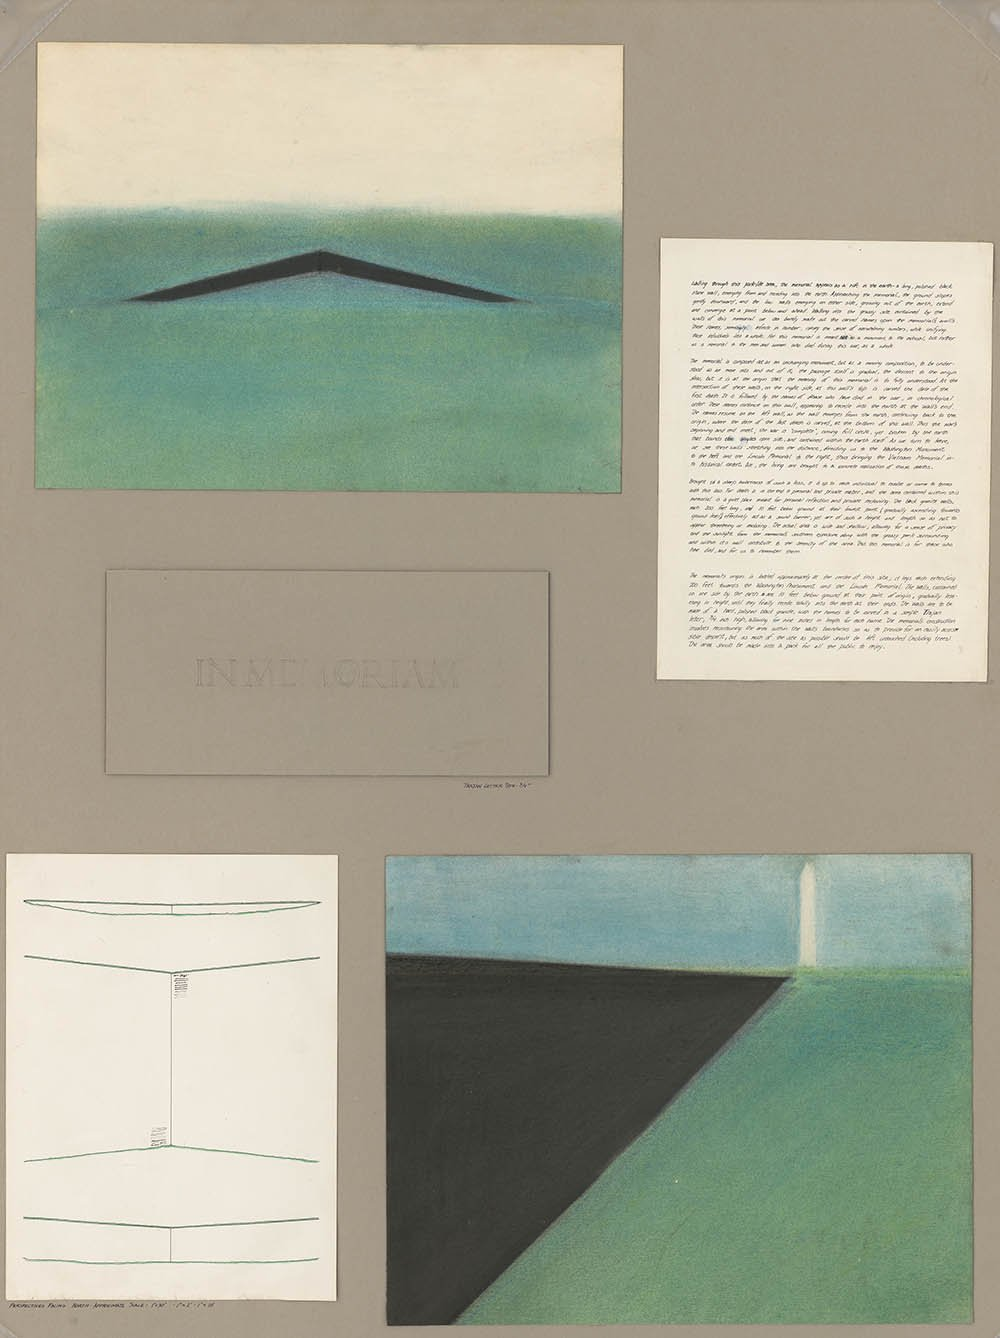 Maya Lin was a college student when she submitted her proposal for the Vietnam Veterans Memorial design competition. https://t.co/LC0b5UJ8SZ https://t.co/zY7OcMZMtW